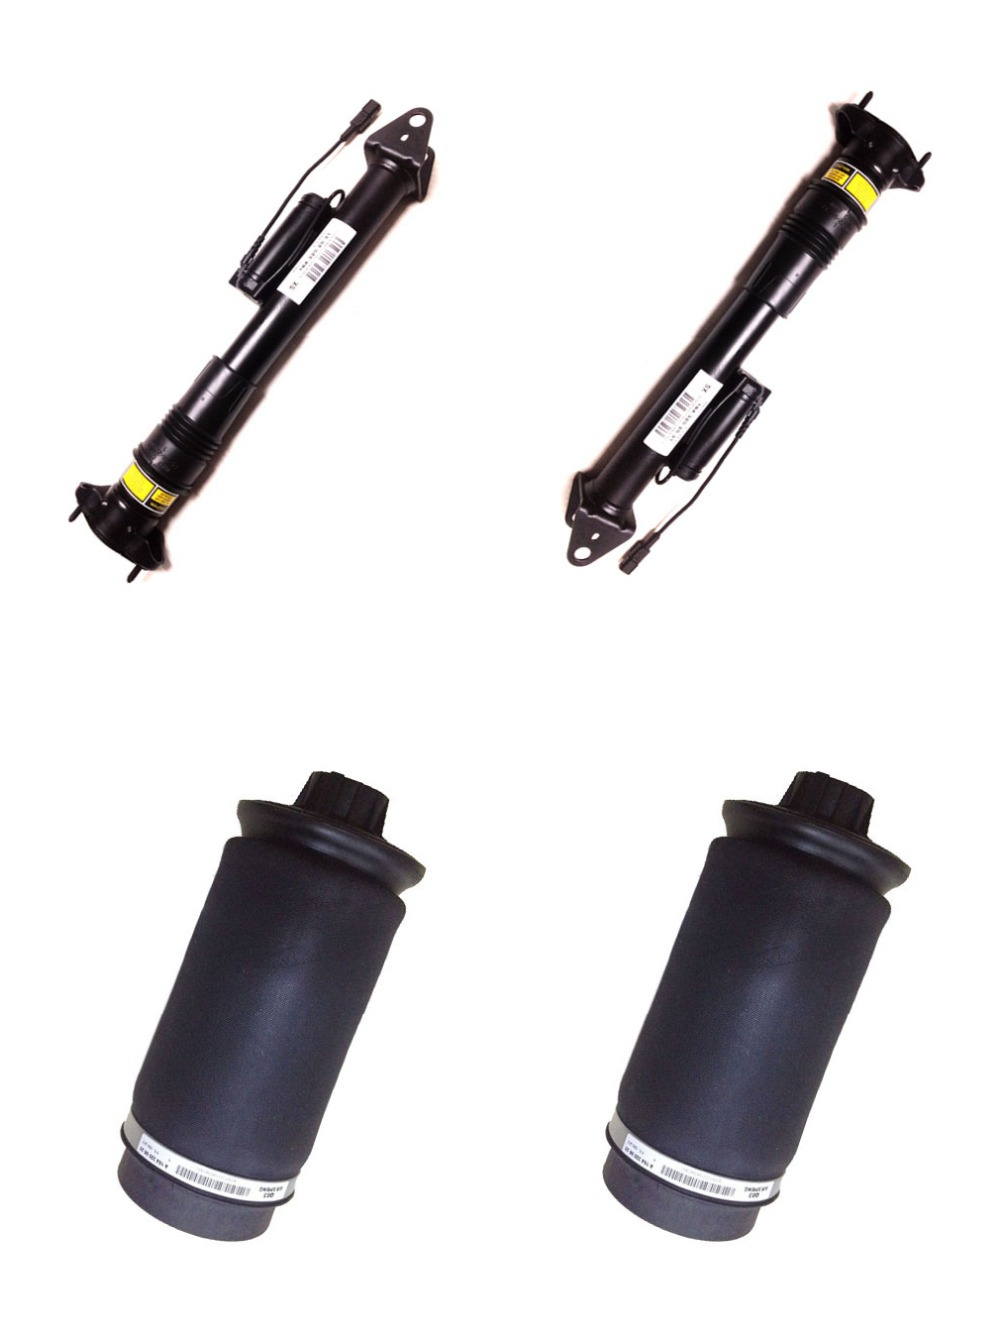 Rear Air Suspension 2pcs Shock Absorber with ADS and 2pcs air spring bags for Mercedes benz GL Class X164 / Ml Class W164 autoparts for car air spring air bellow air chamber for benz w164 front shock oe 164 320 6013 164 320 6113